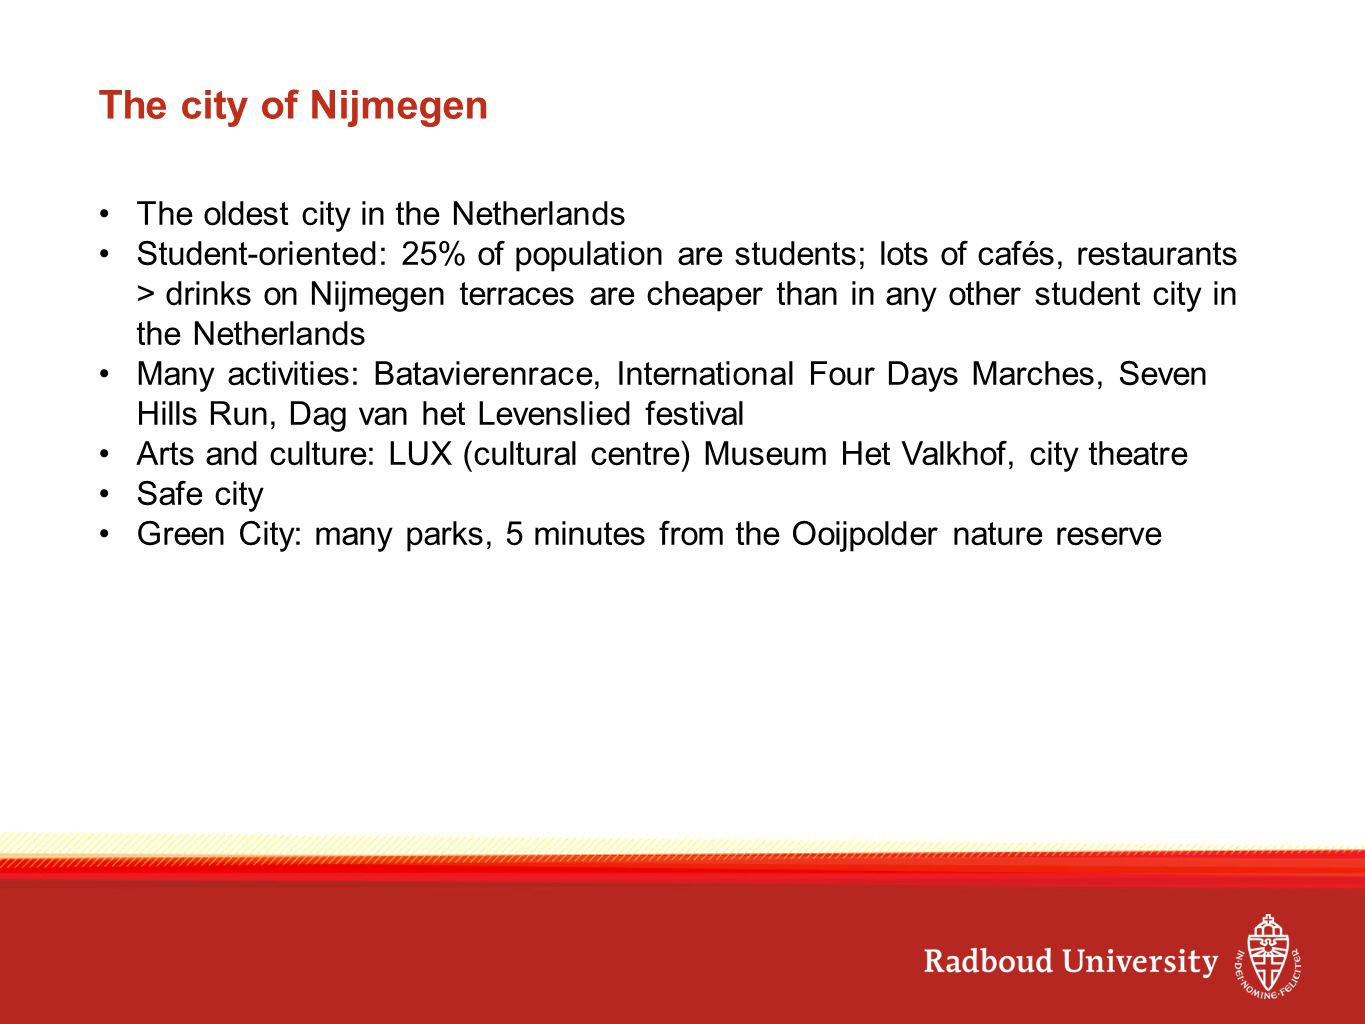 The city of Nijmegen The oldest city in the Netherlands Student-oriented: 25% of population are students; lots of cafés, restaurants > drinks on Nijmegen terraces are cheaper than in any other student city in the Netherlands Many activities: Batavierenrace, International Four Days Marches, Seven Hills Run, Dag van het Levenslied festival Arts and culture: LUX (cultural centre) Museum Het Valkhof, city theatre Safe city Green City: many parks, 5 minutes from the Ooijpolder nature reserve